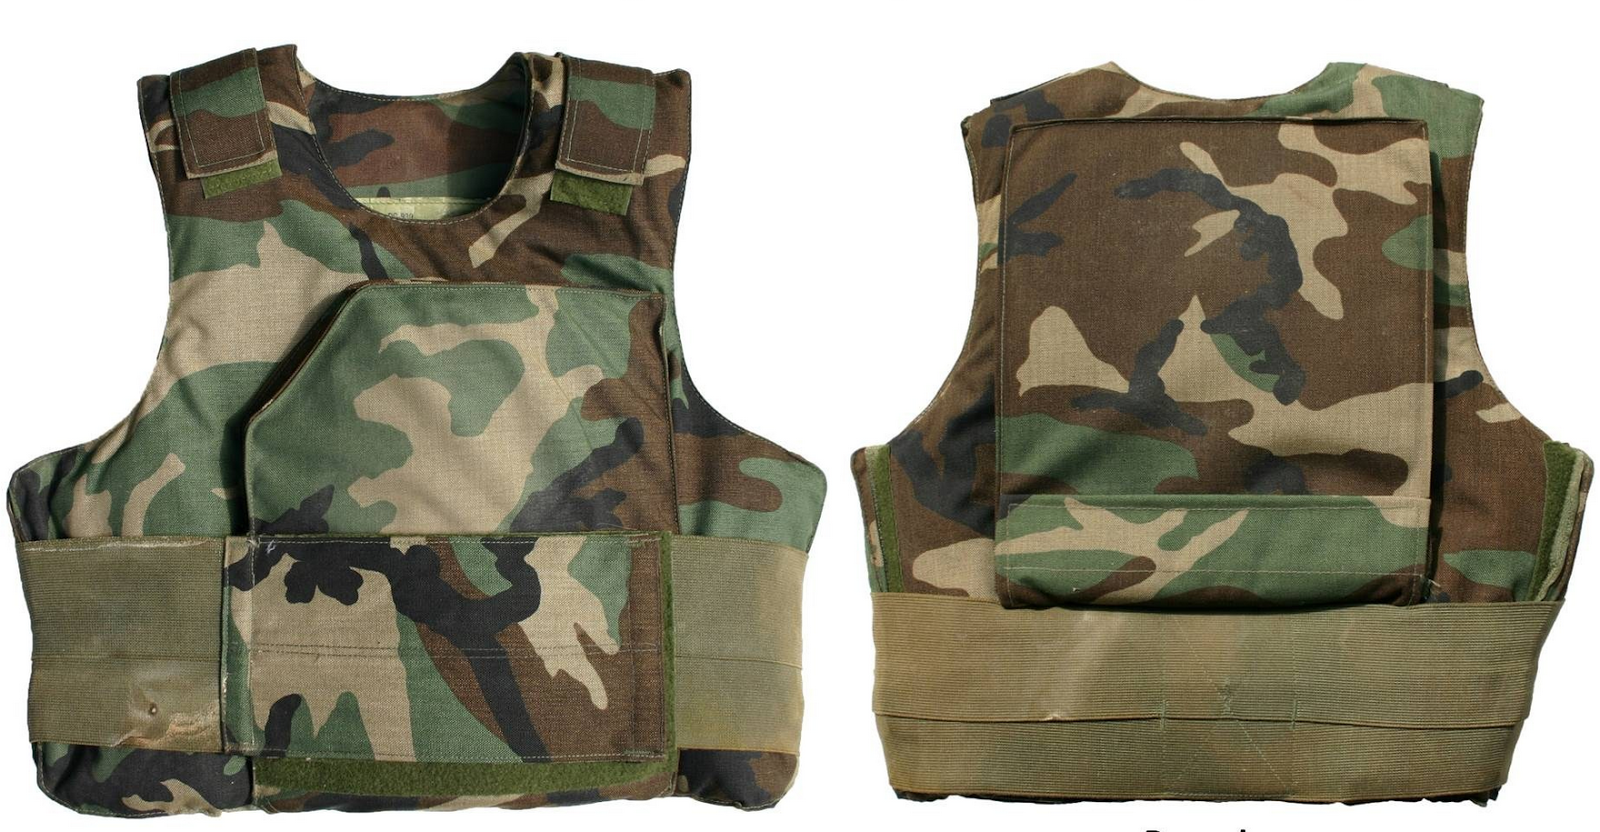 time for a look at another specific example of military body armor this time we will be looking at ranger body armor used by the united states army